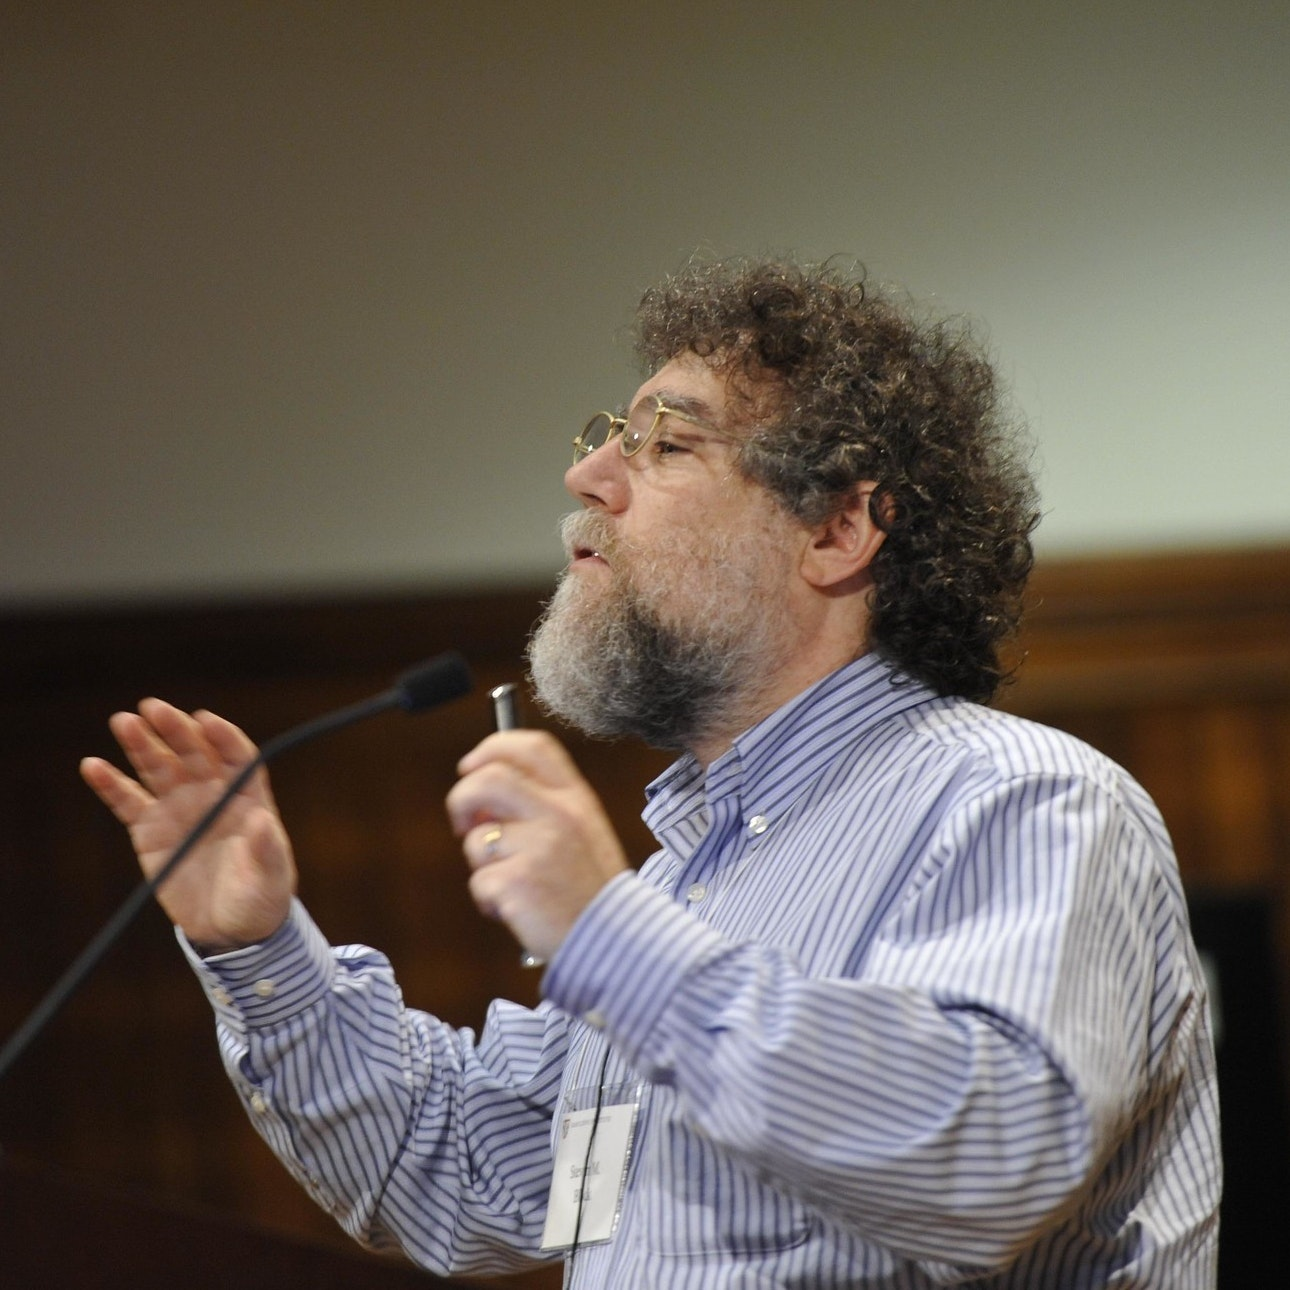 A person speaks in front of an audience at a conference.